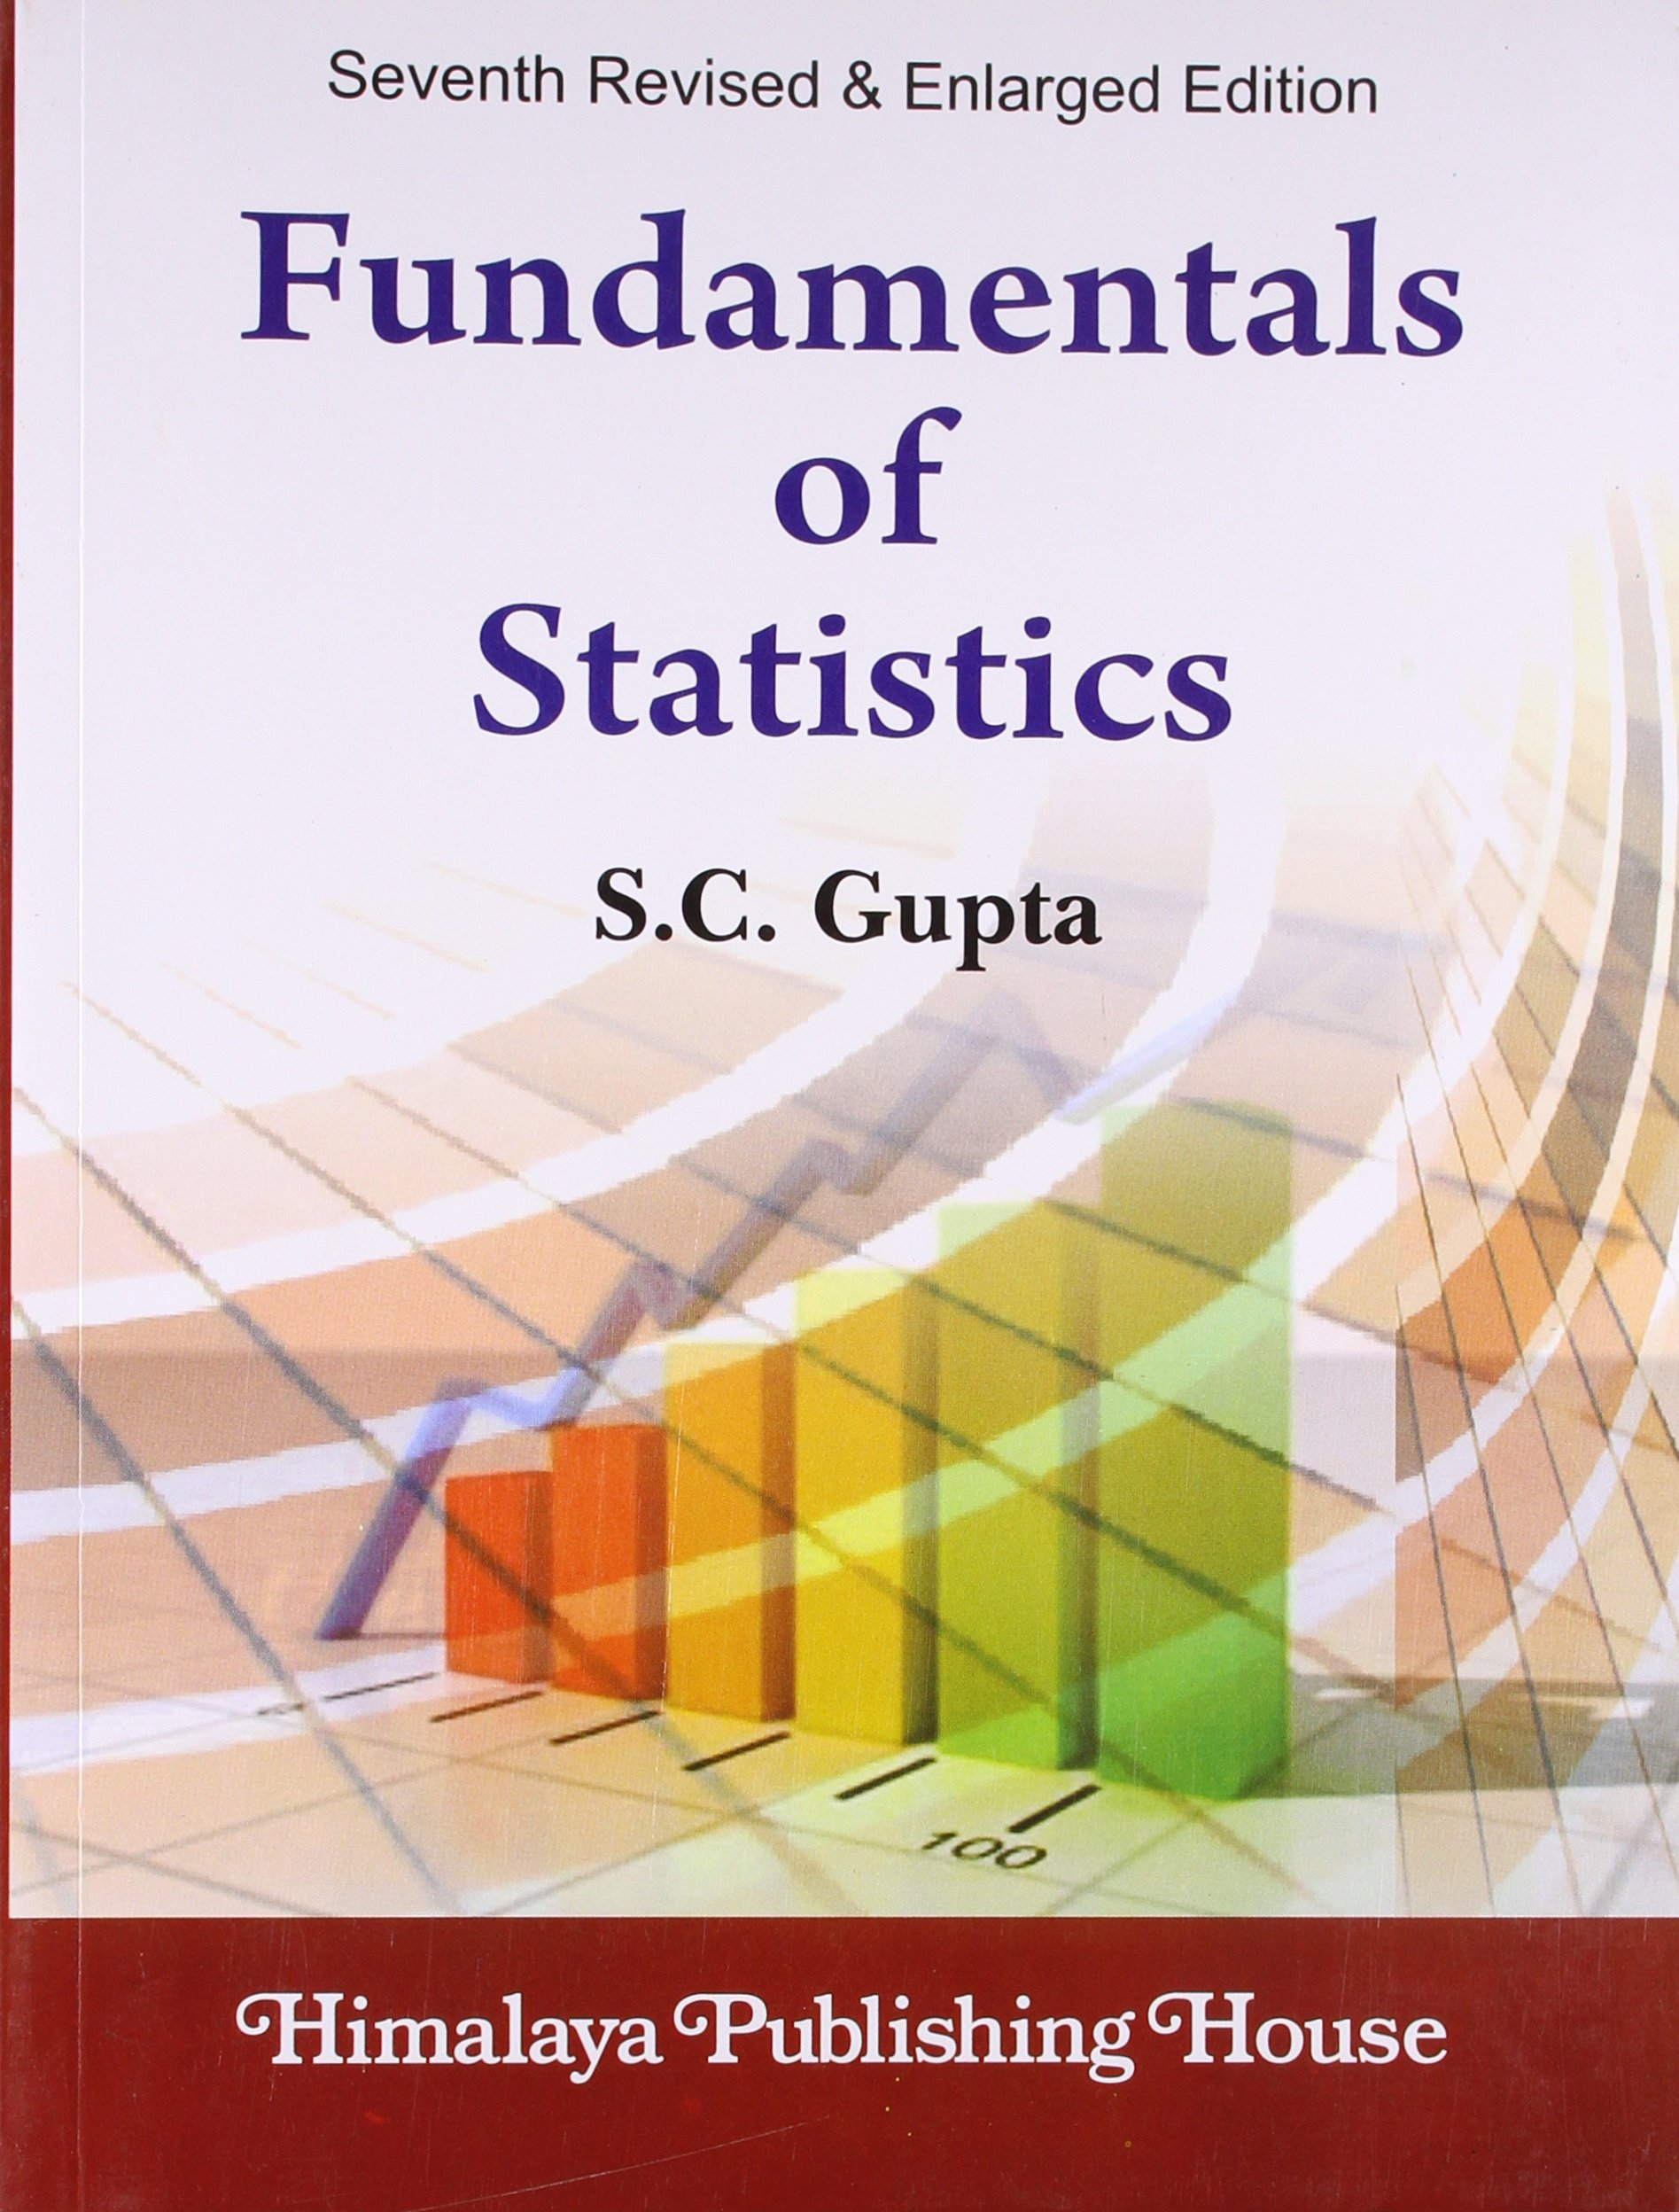 STATISTICS BOOK PDF SP GUPTA EPUB DOWNLOAD